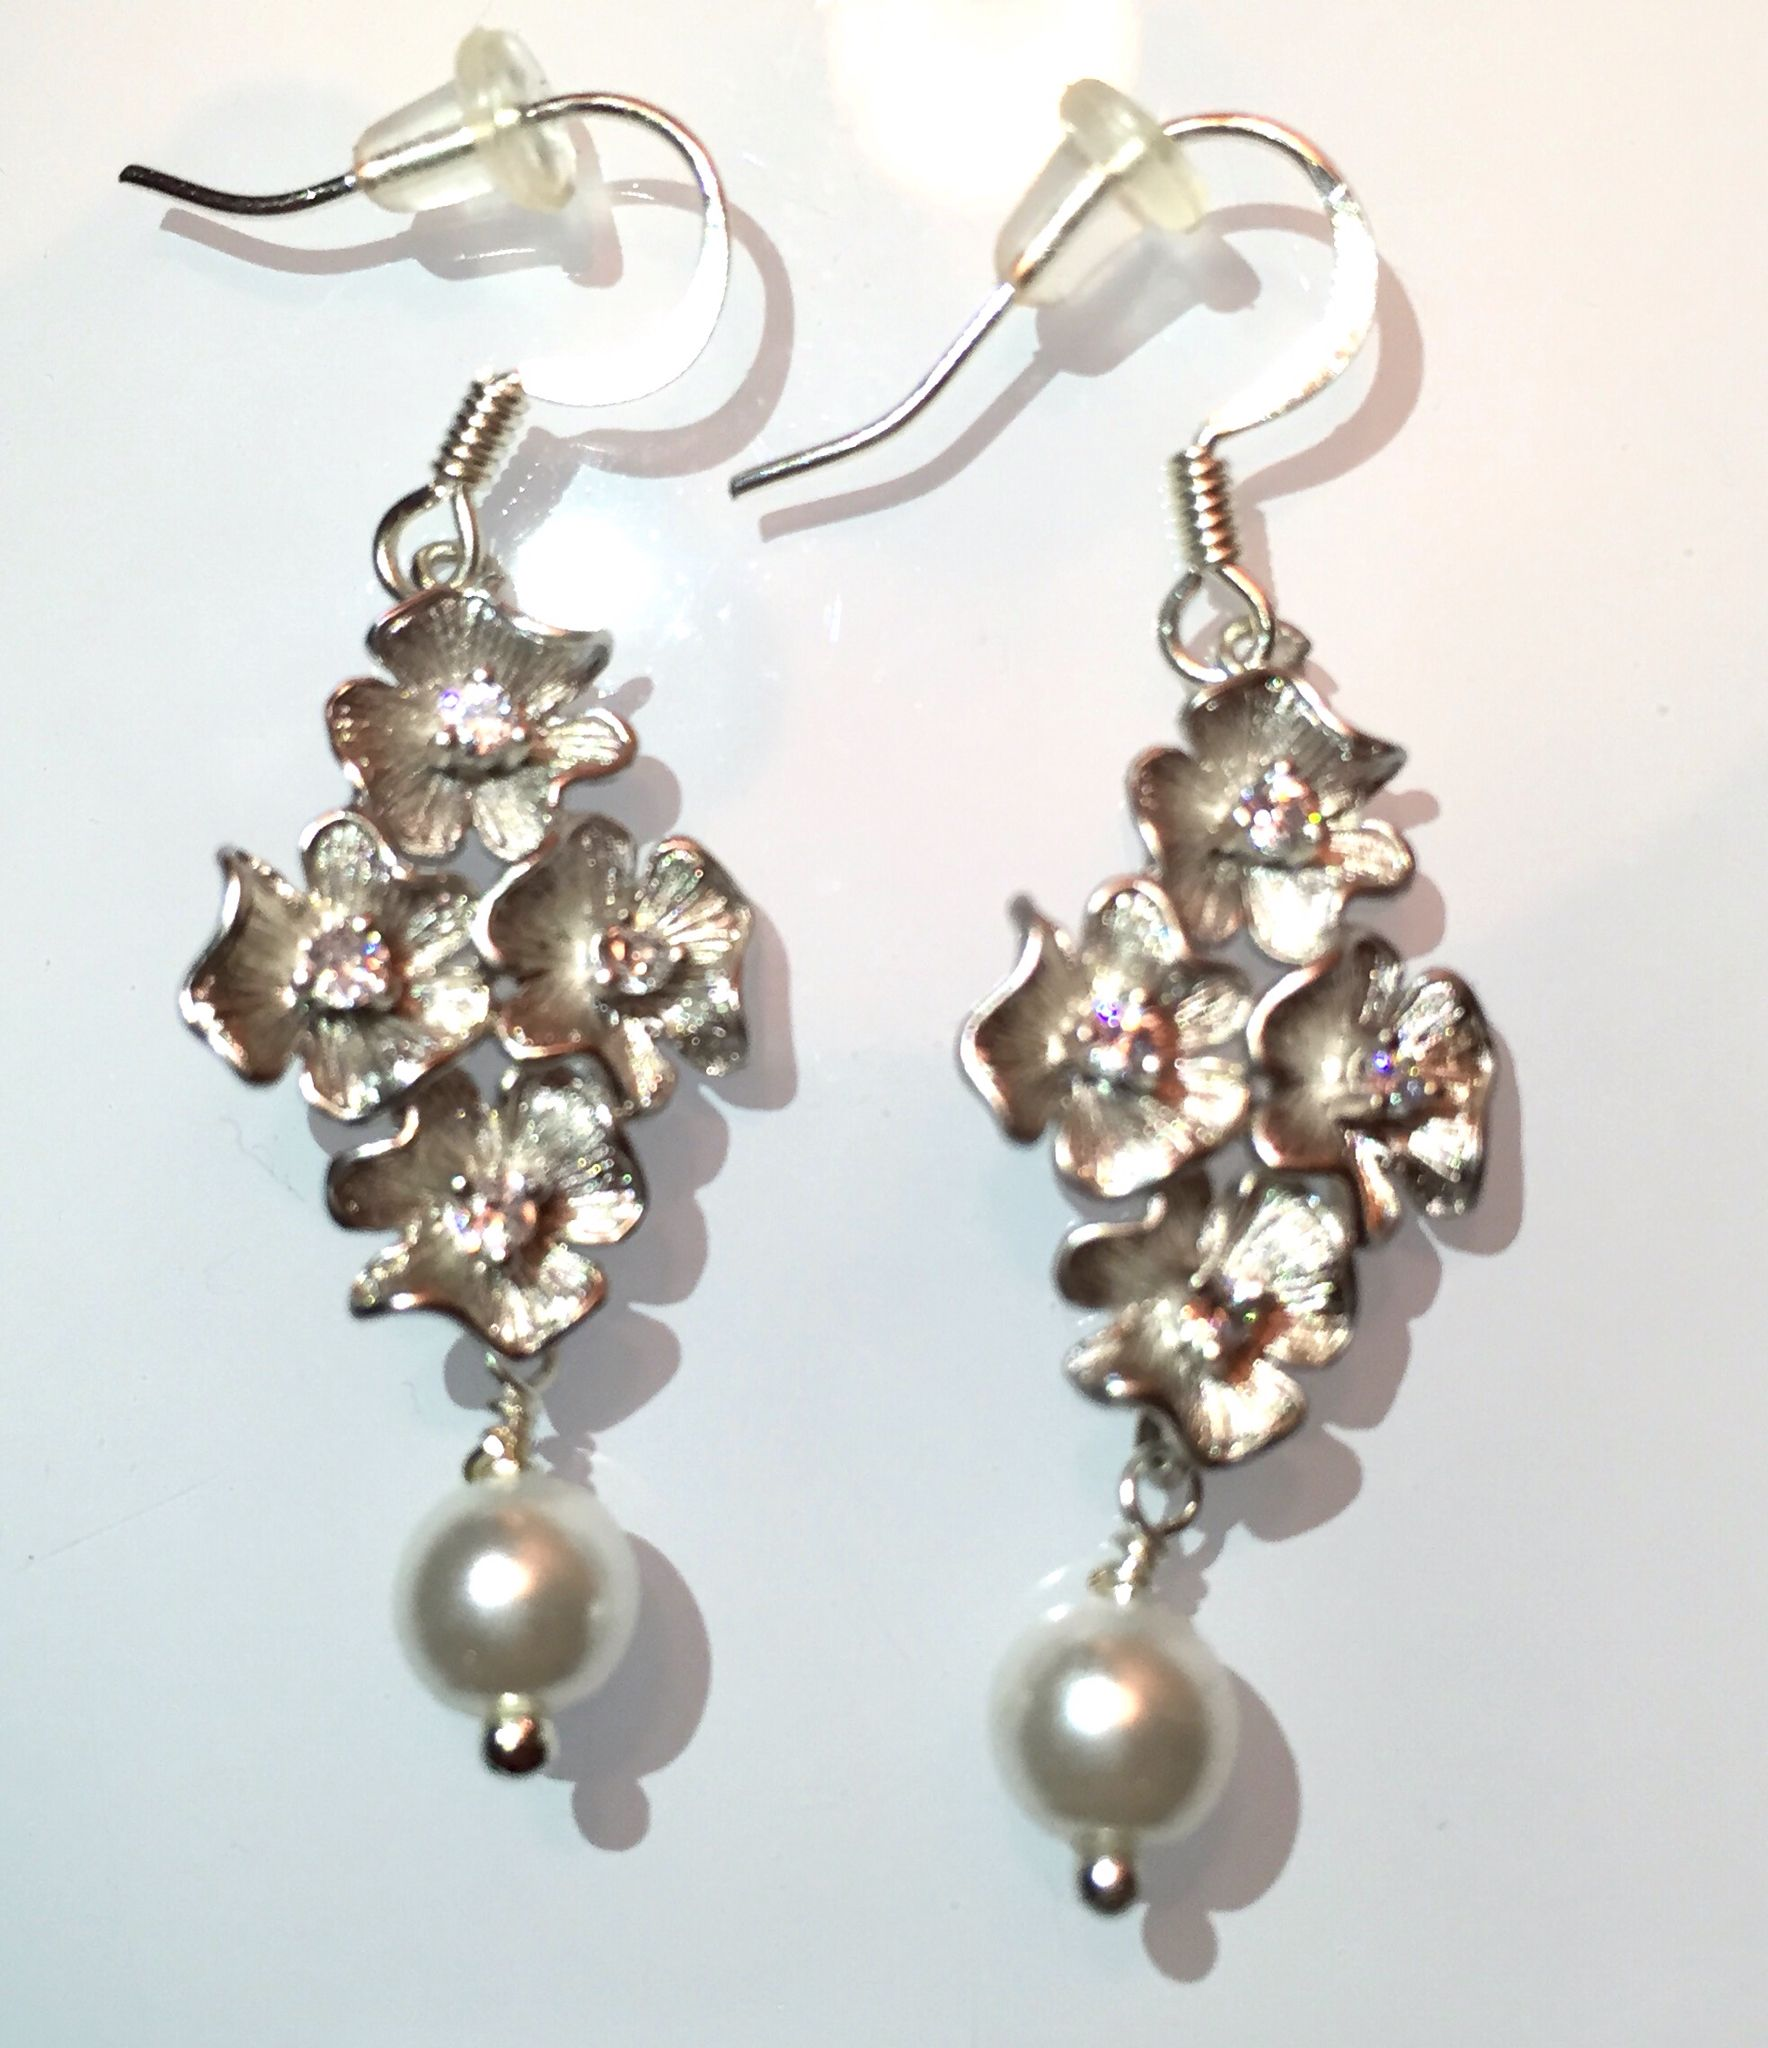 Hypoallergenic zirconia earrings !!! If you love this item please visit my page: www.etsy.com/JewelryByVogue